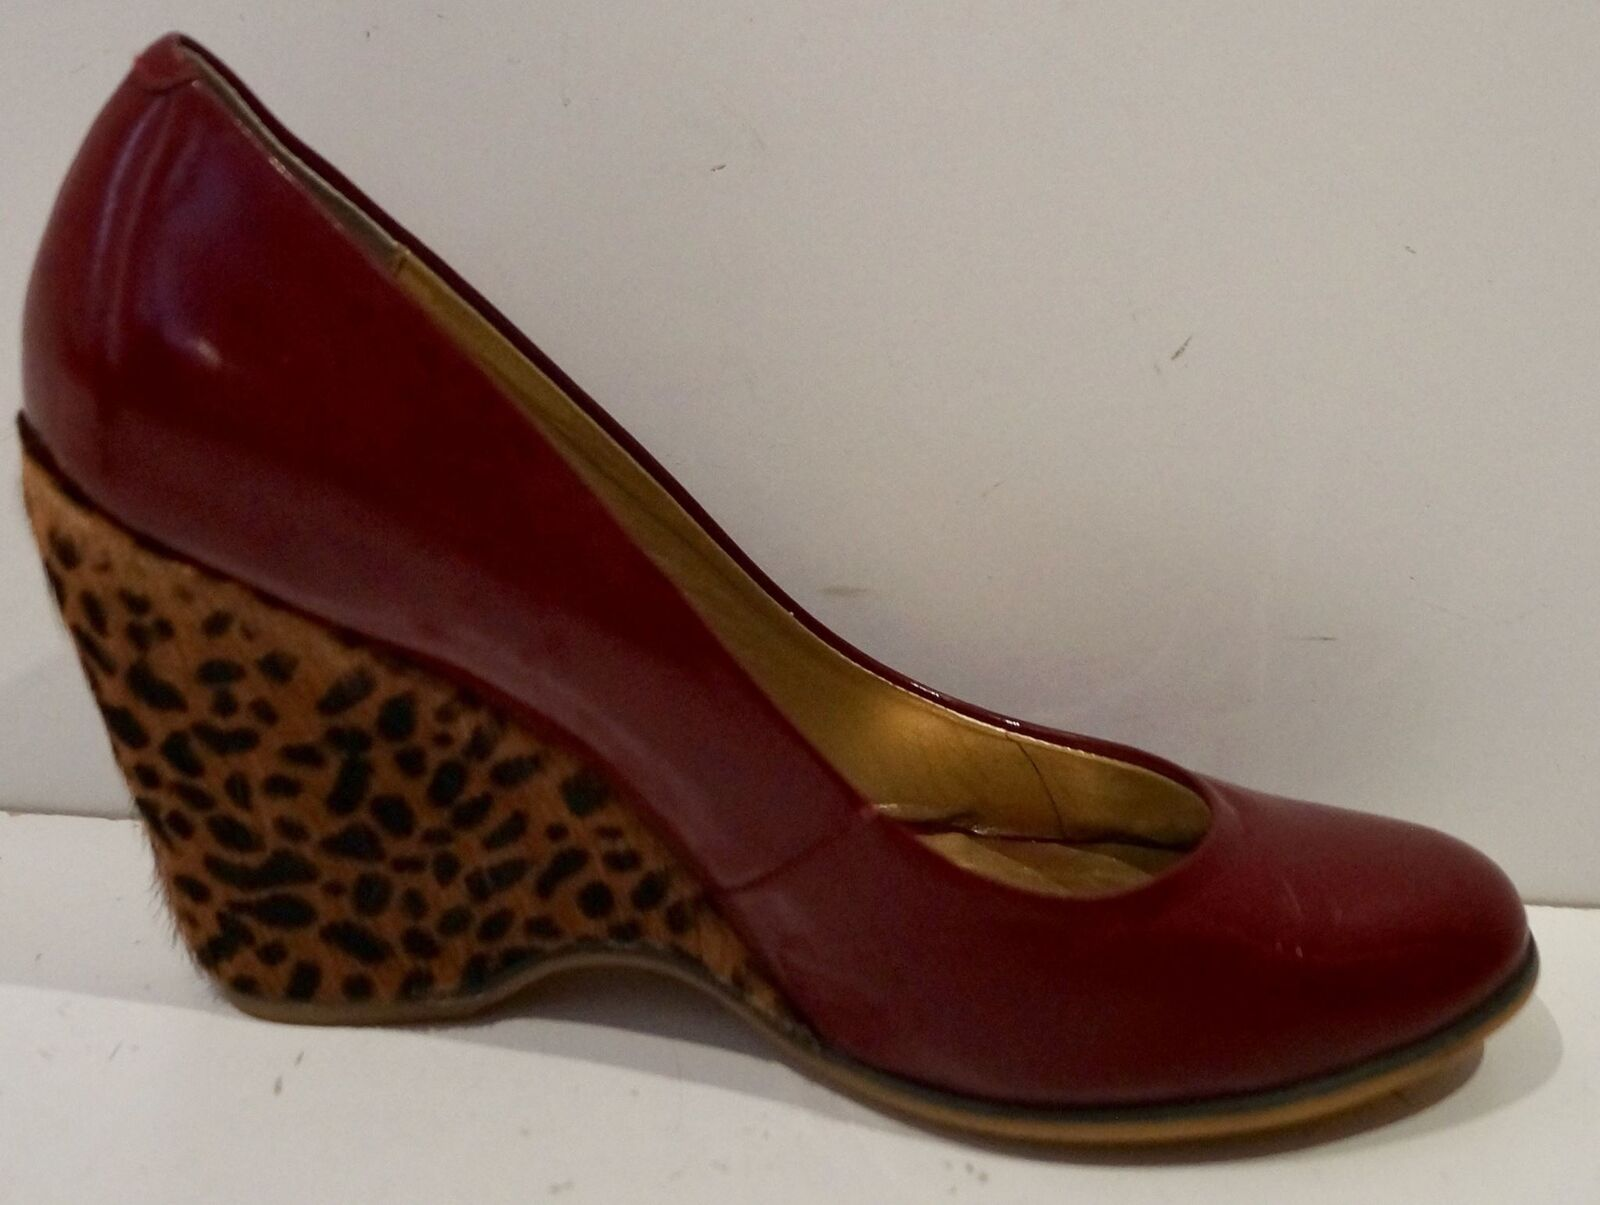 POETIC POETIC POETIC LICENCE Burgundy Red Leather Leopard Pony Hair Wedge Heel Court shoes 5 55ca87